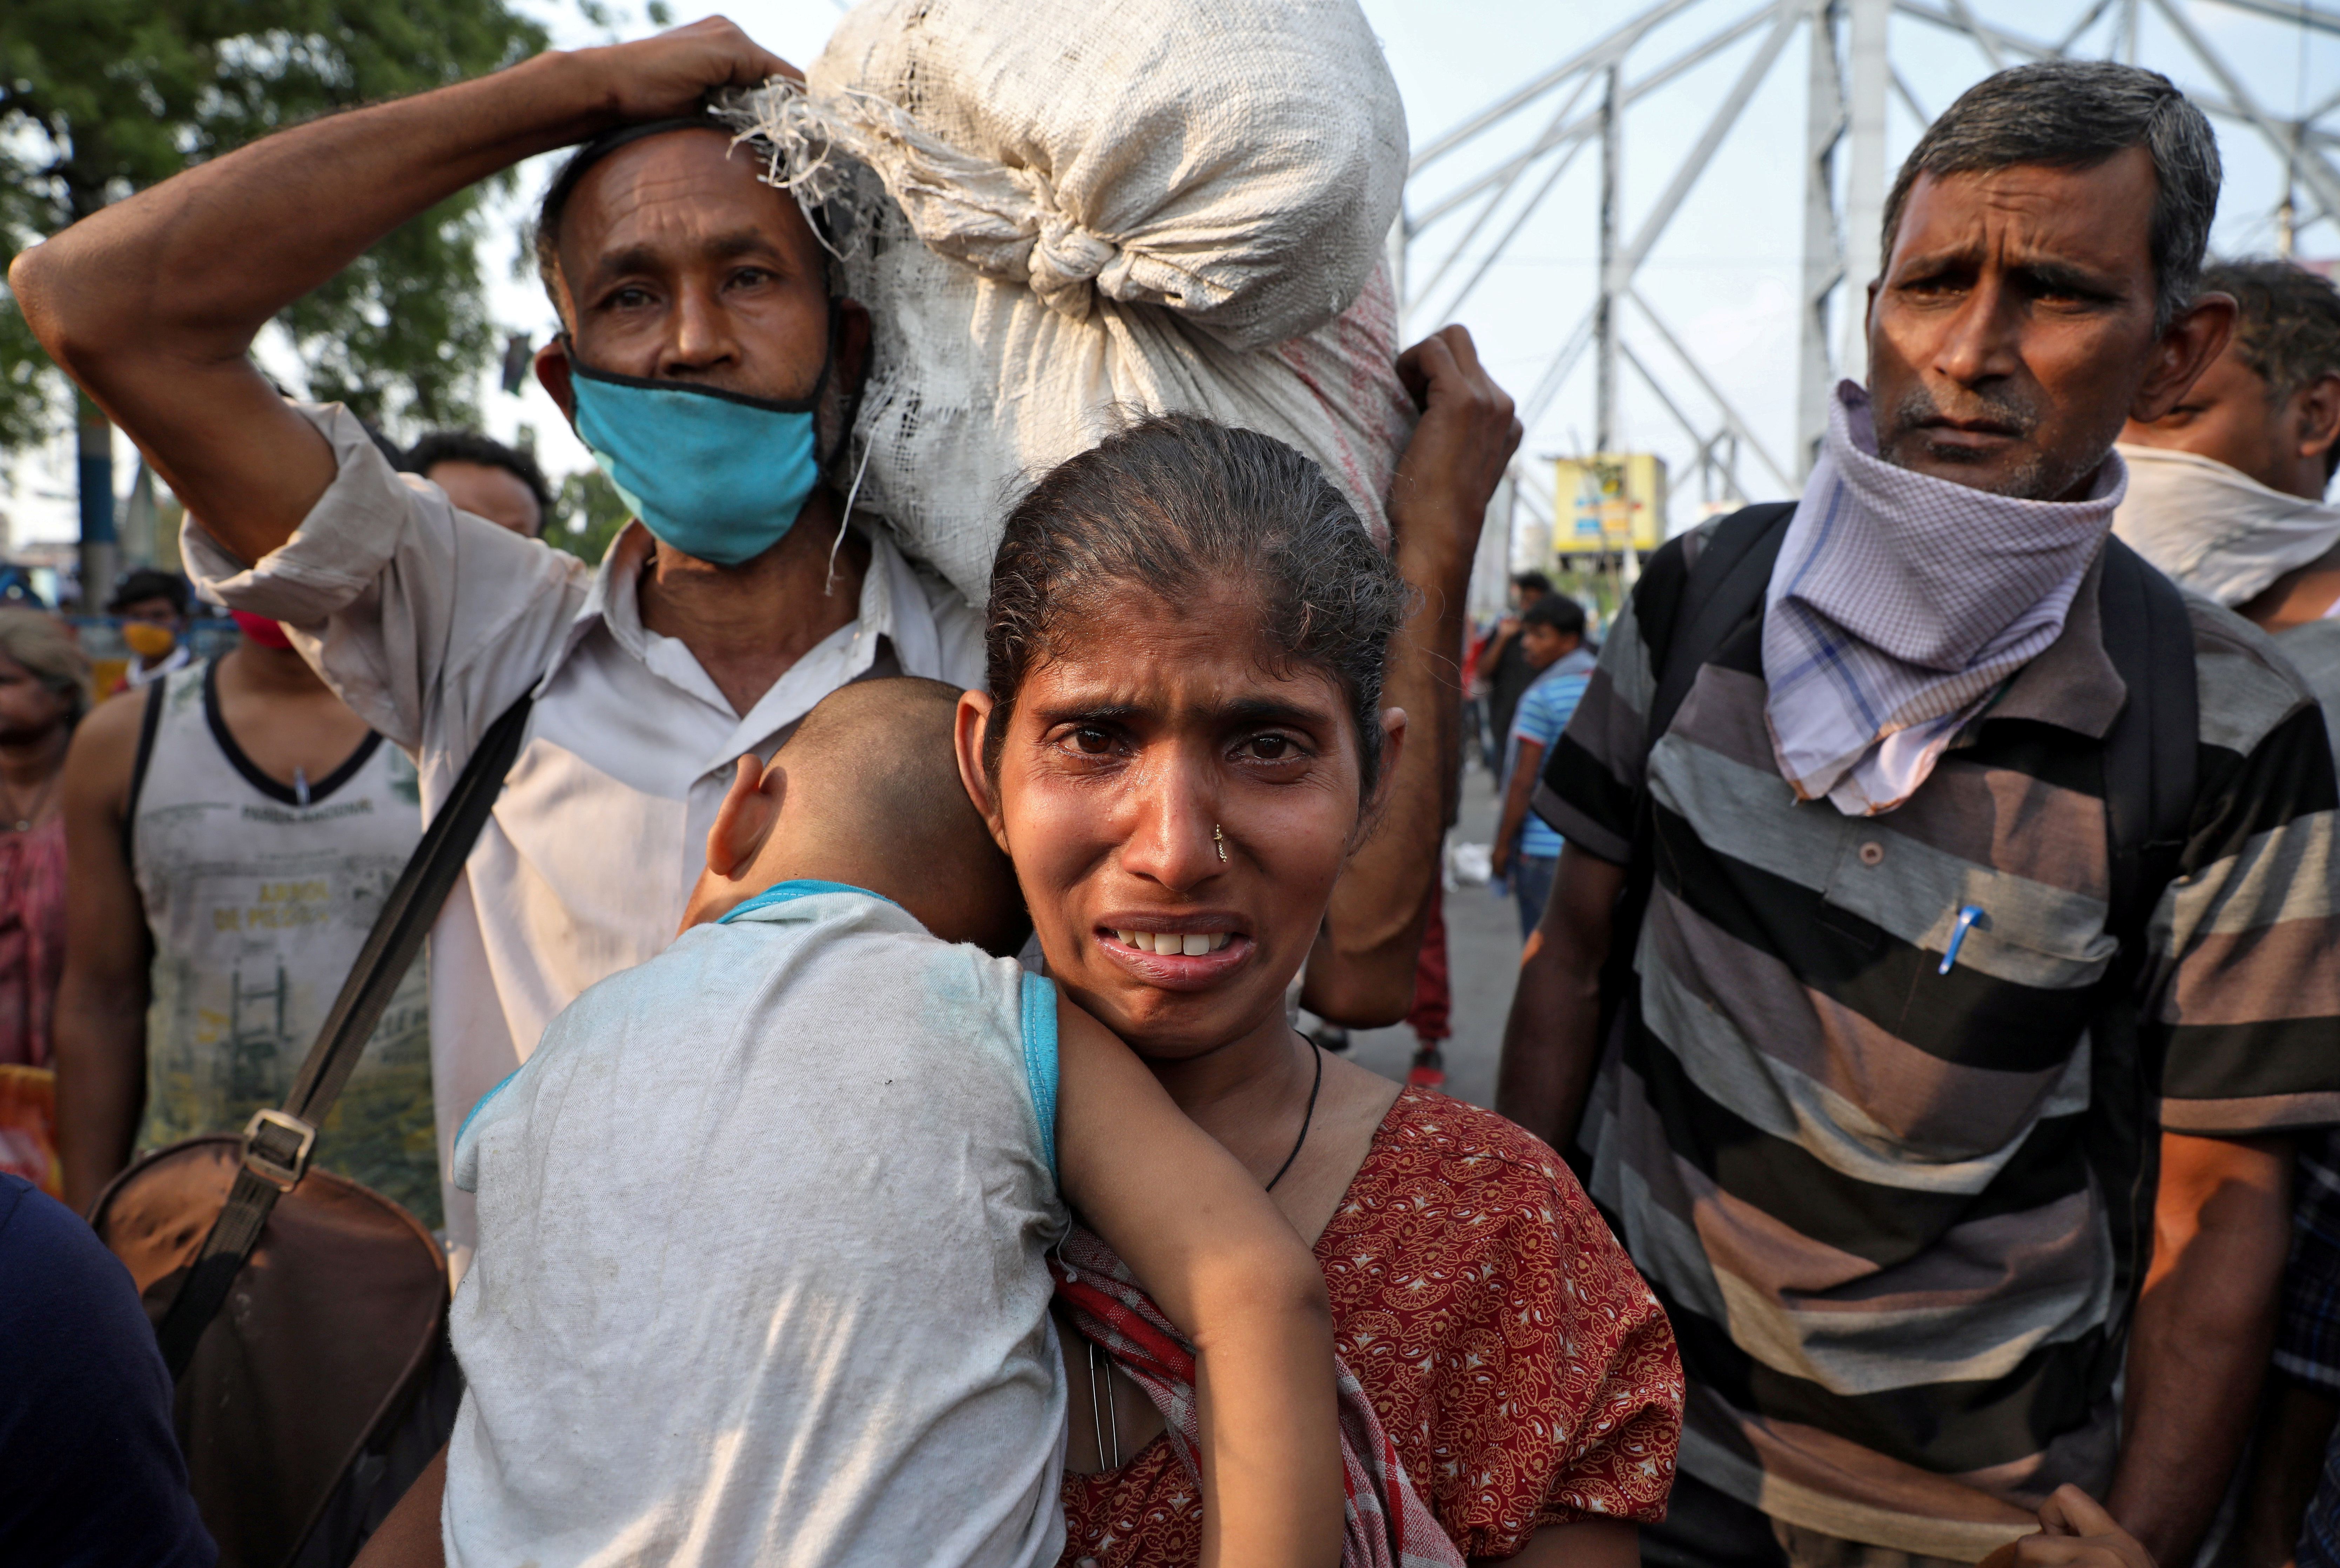 A migrant worker holding her baby cries after she missed out on receiving free food outside Howrah railway station after India ordered a 21-day nationwide lockdown to limit the spreading of coronavirus disease (COVID-19), in Kolkata, India, March 25, 2020. Photo: Reuters